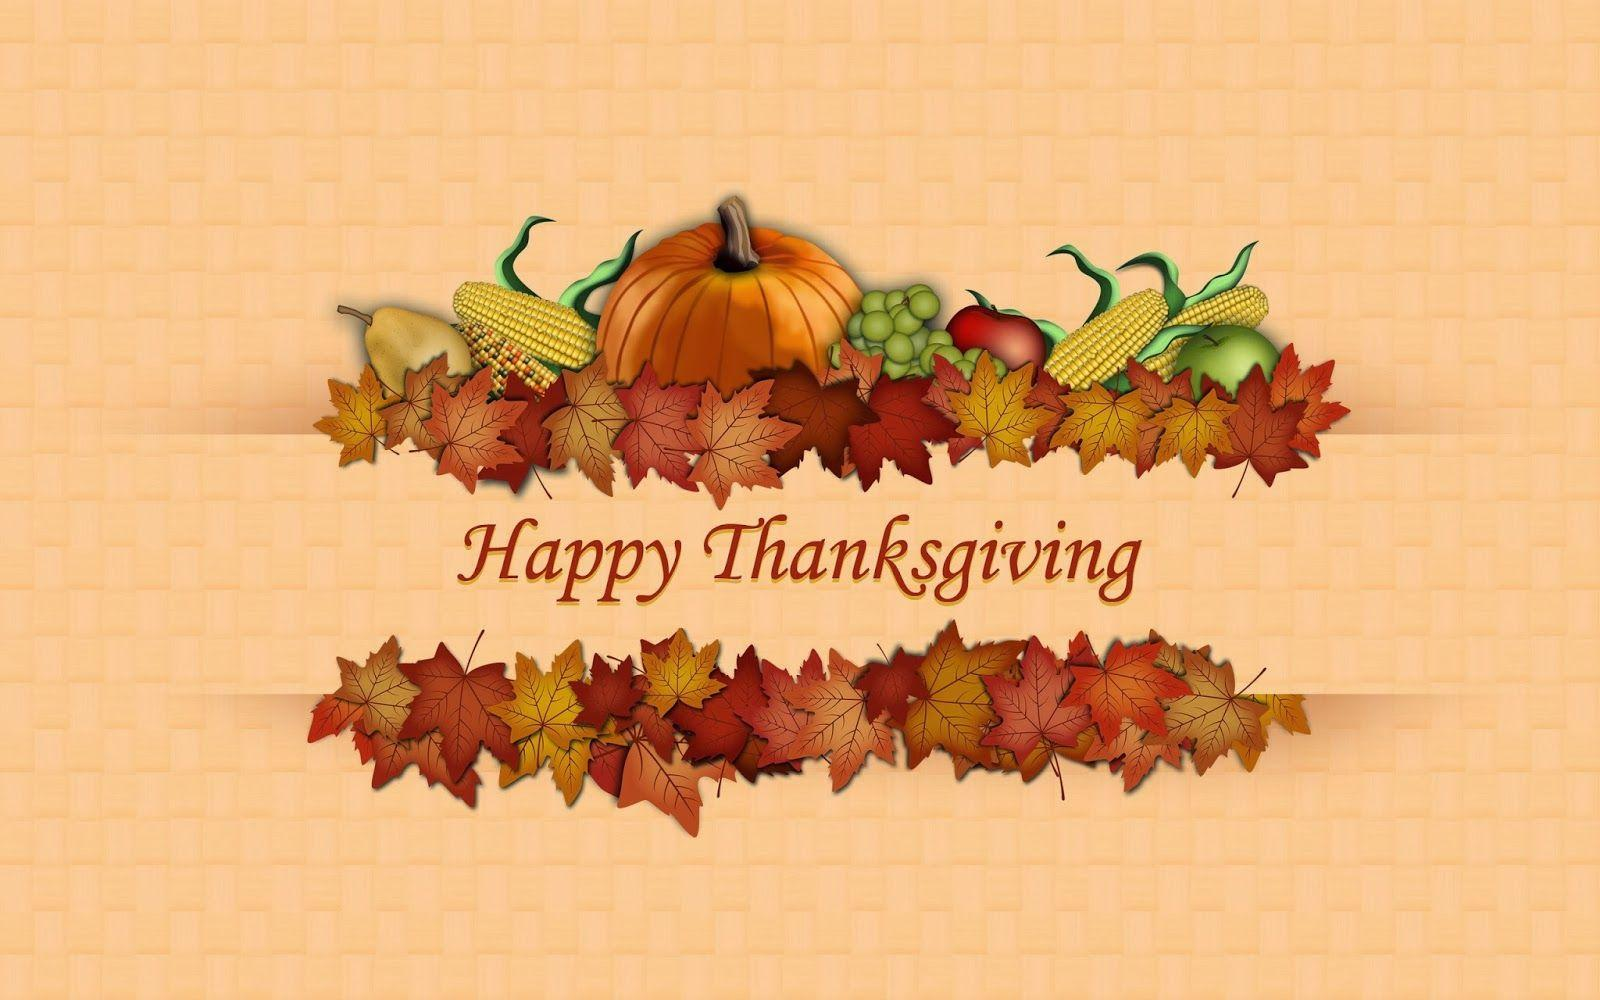 Ravishment: Happy Thanksgiving Day 2013 Wishes HD Wallpapers and ...